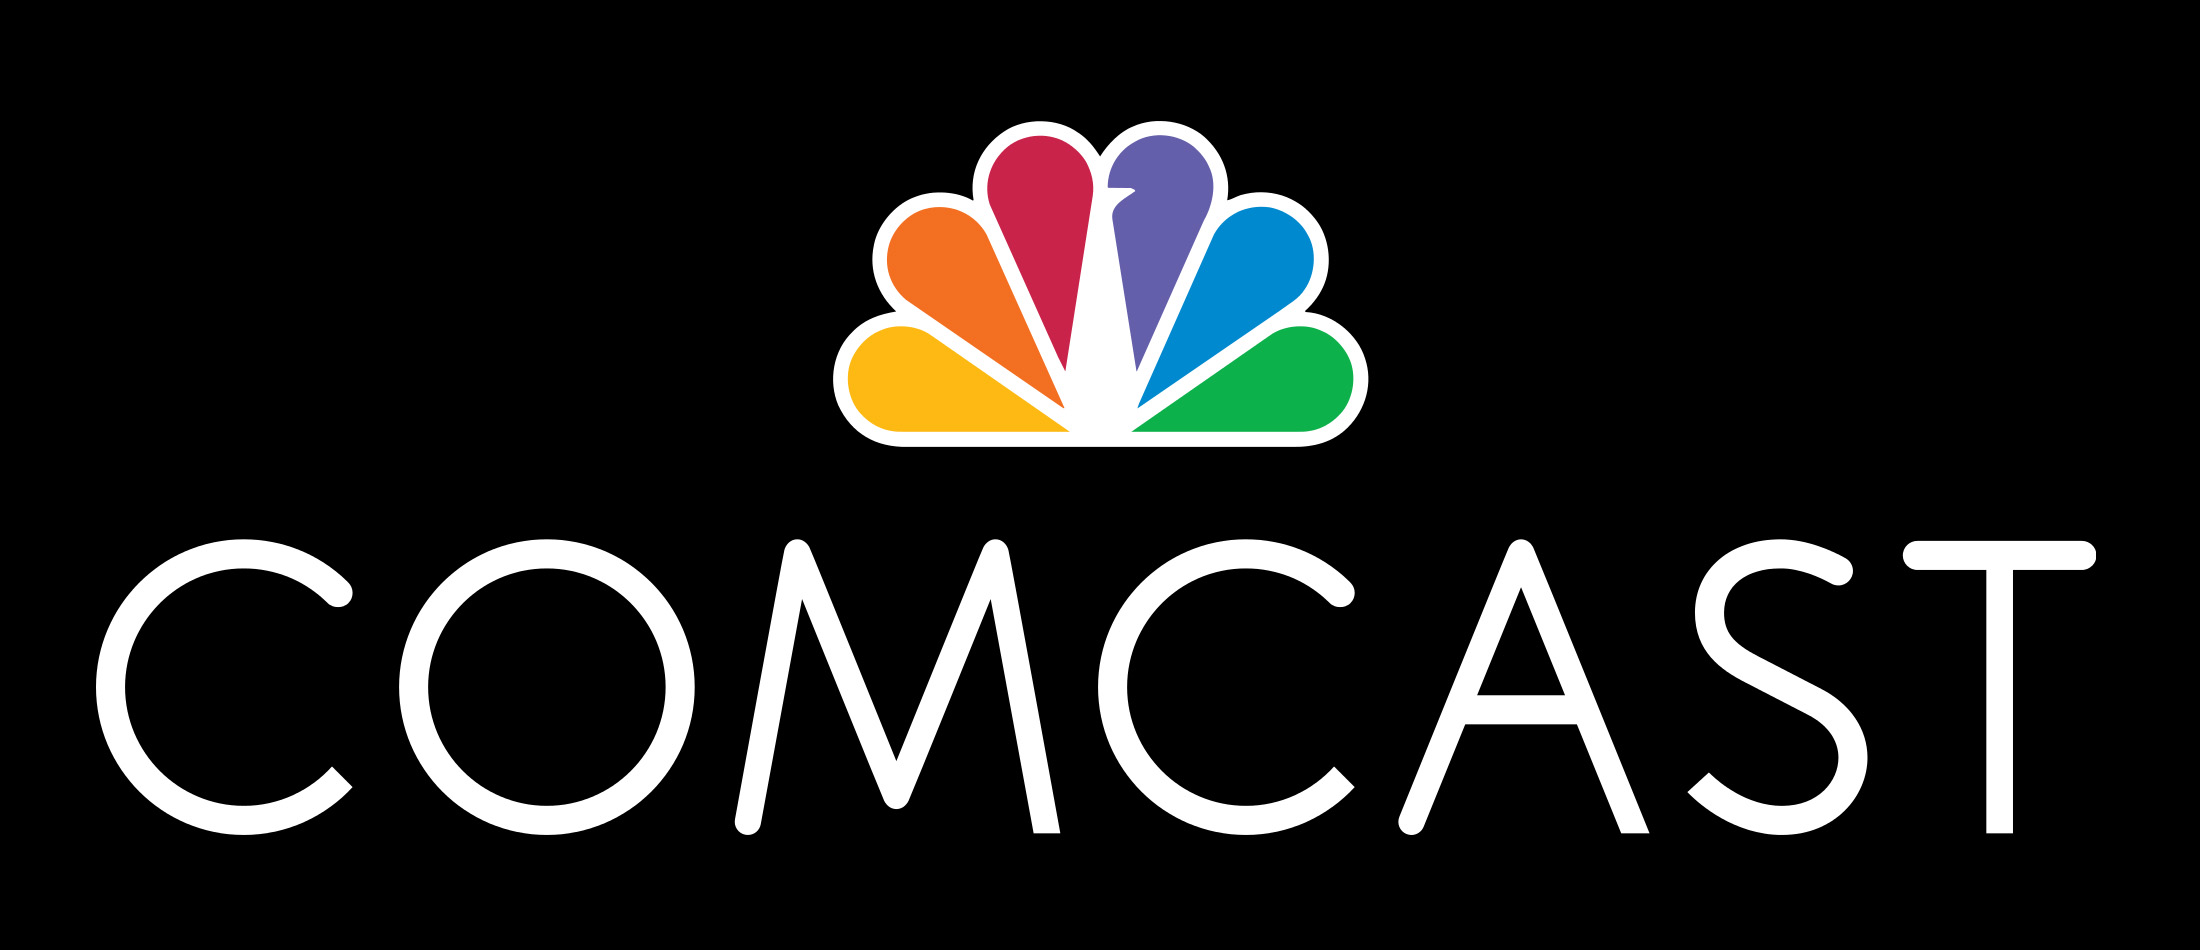 Comcast Logo - Comcast Logo, Comcast Symbol Meaning, History and Evolution